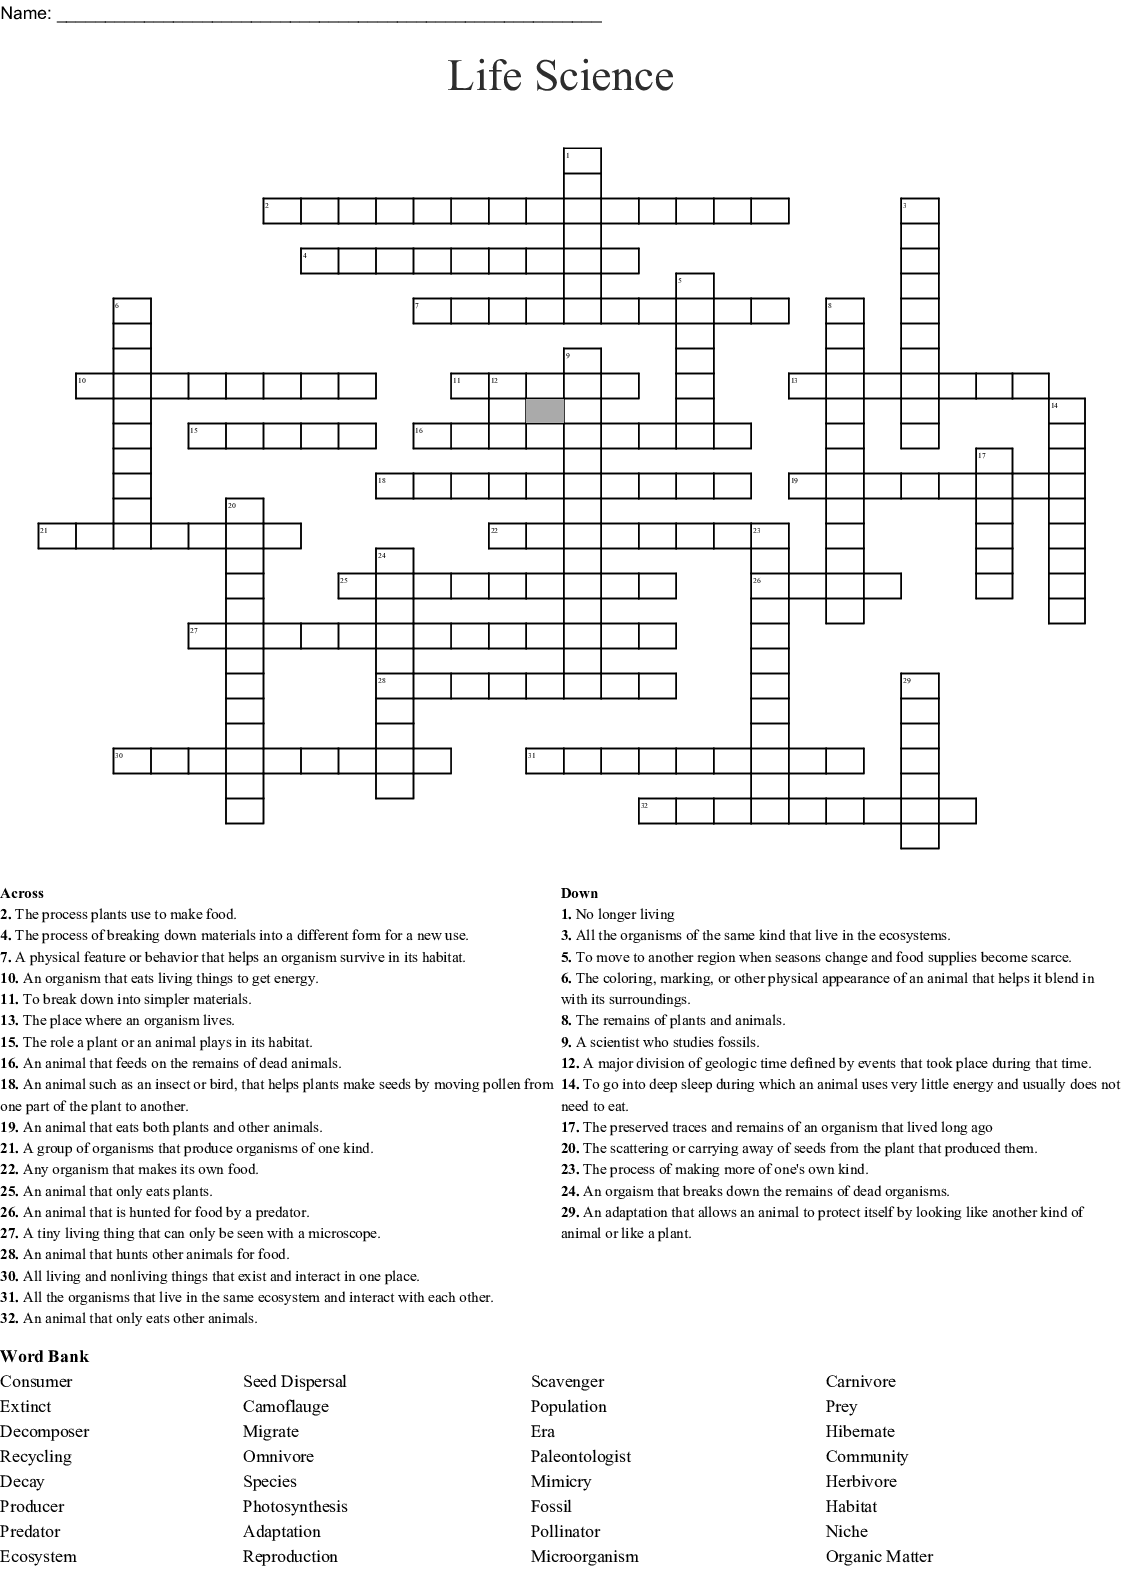 Habitat Amp Conservation Crossword